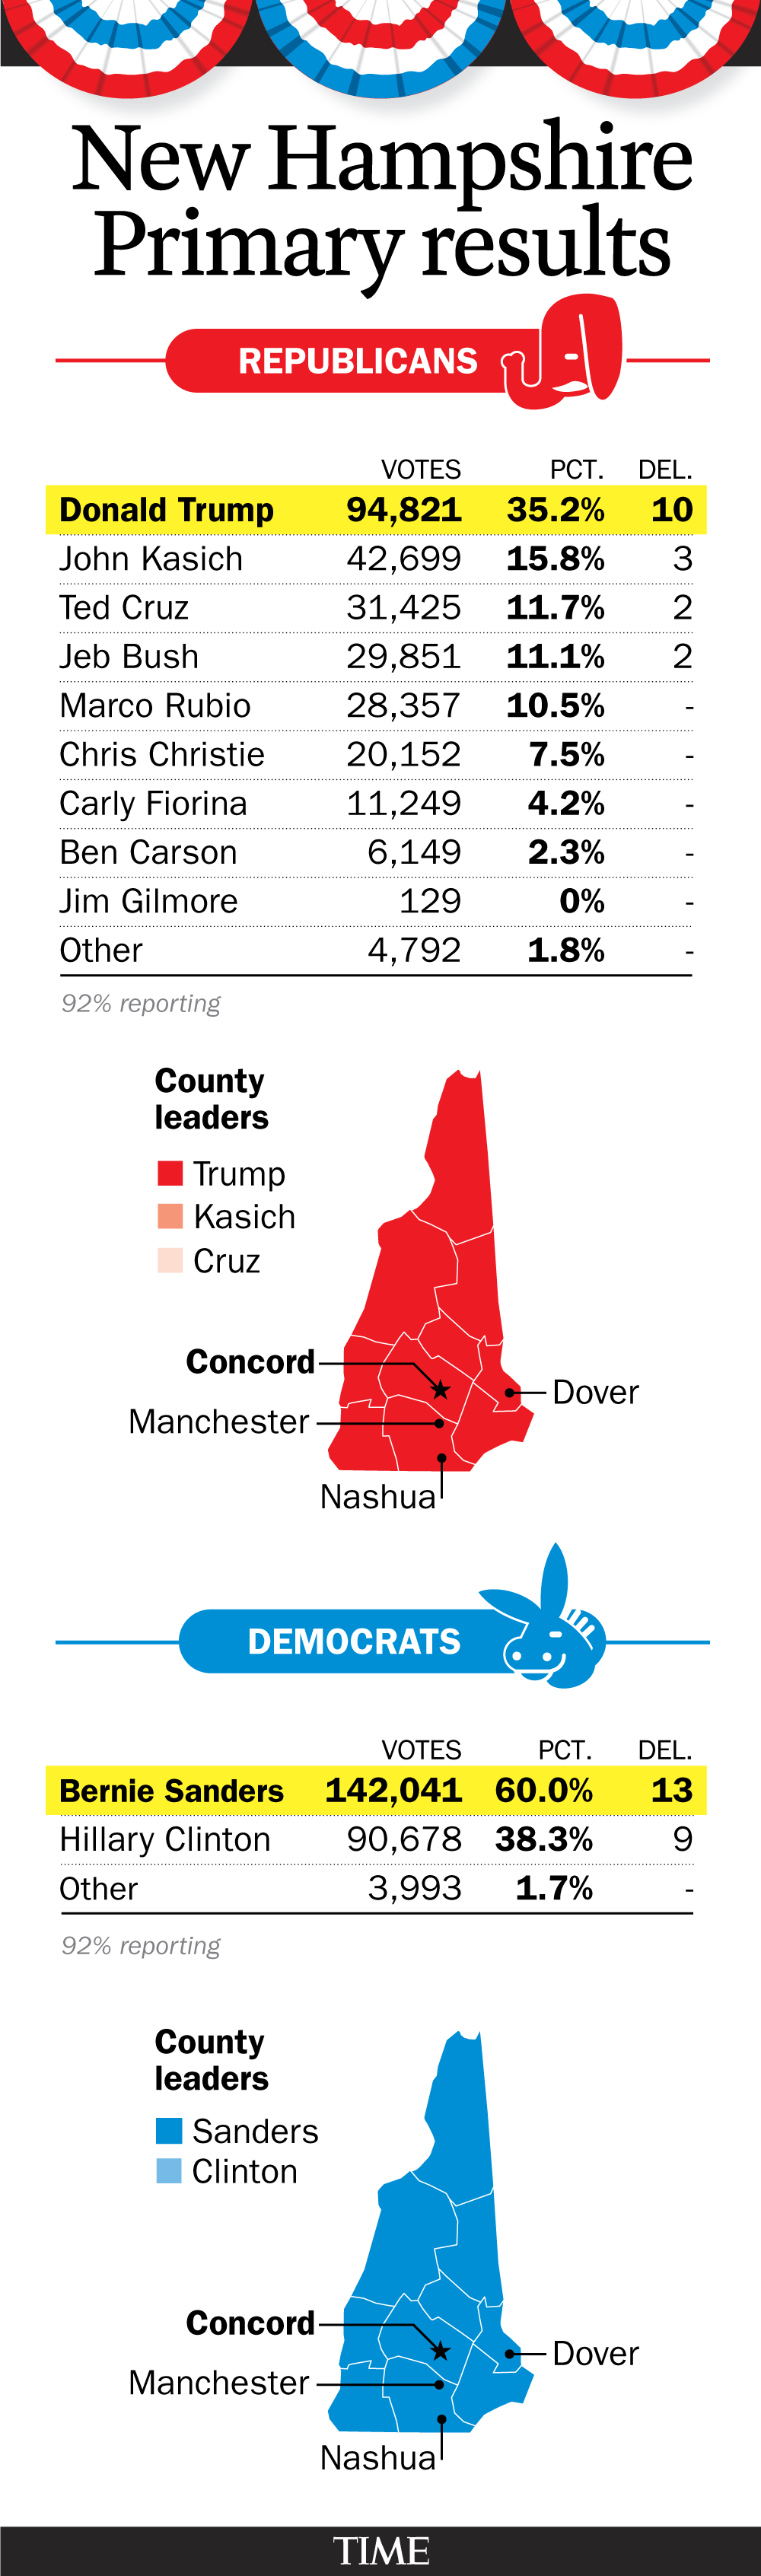 New Hampshire 2016 Primary results -- 92% precincts reporting